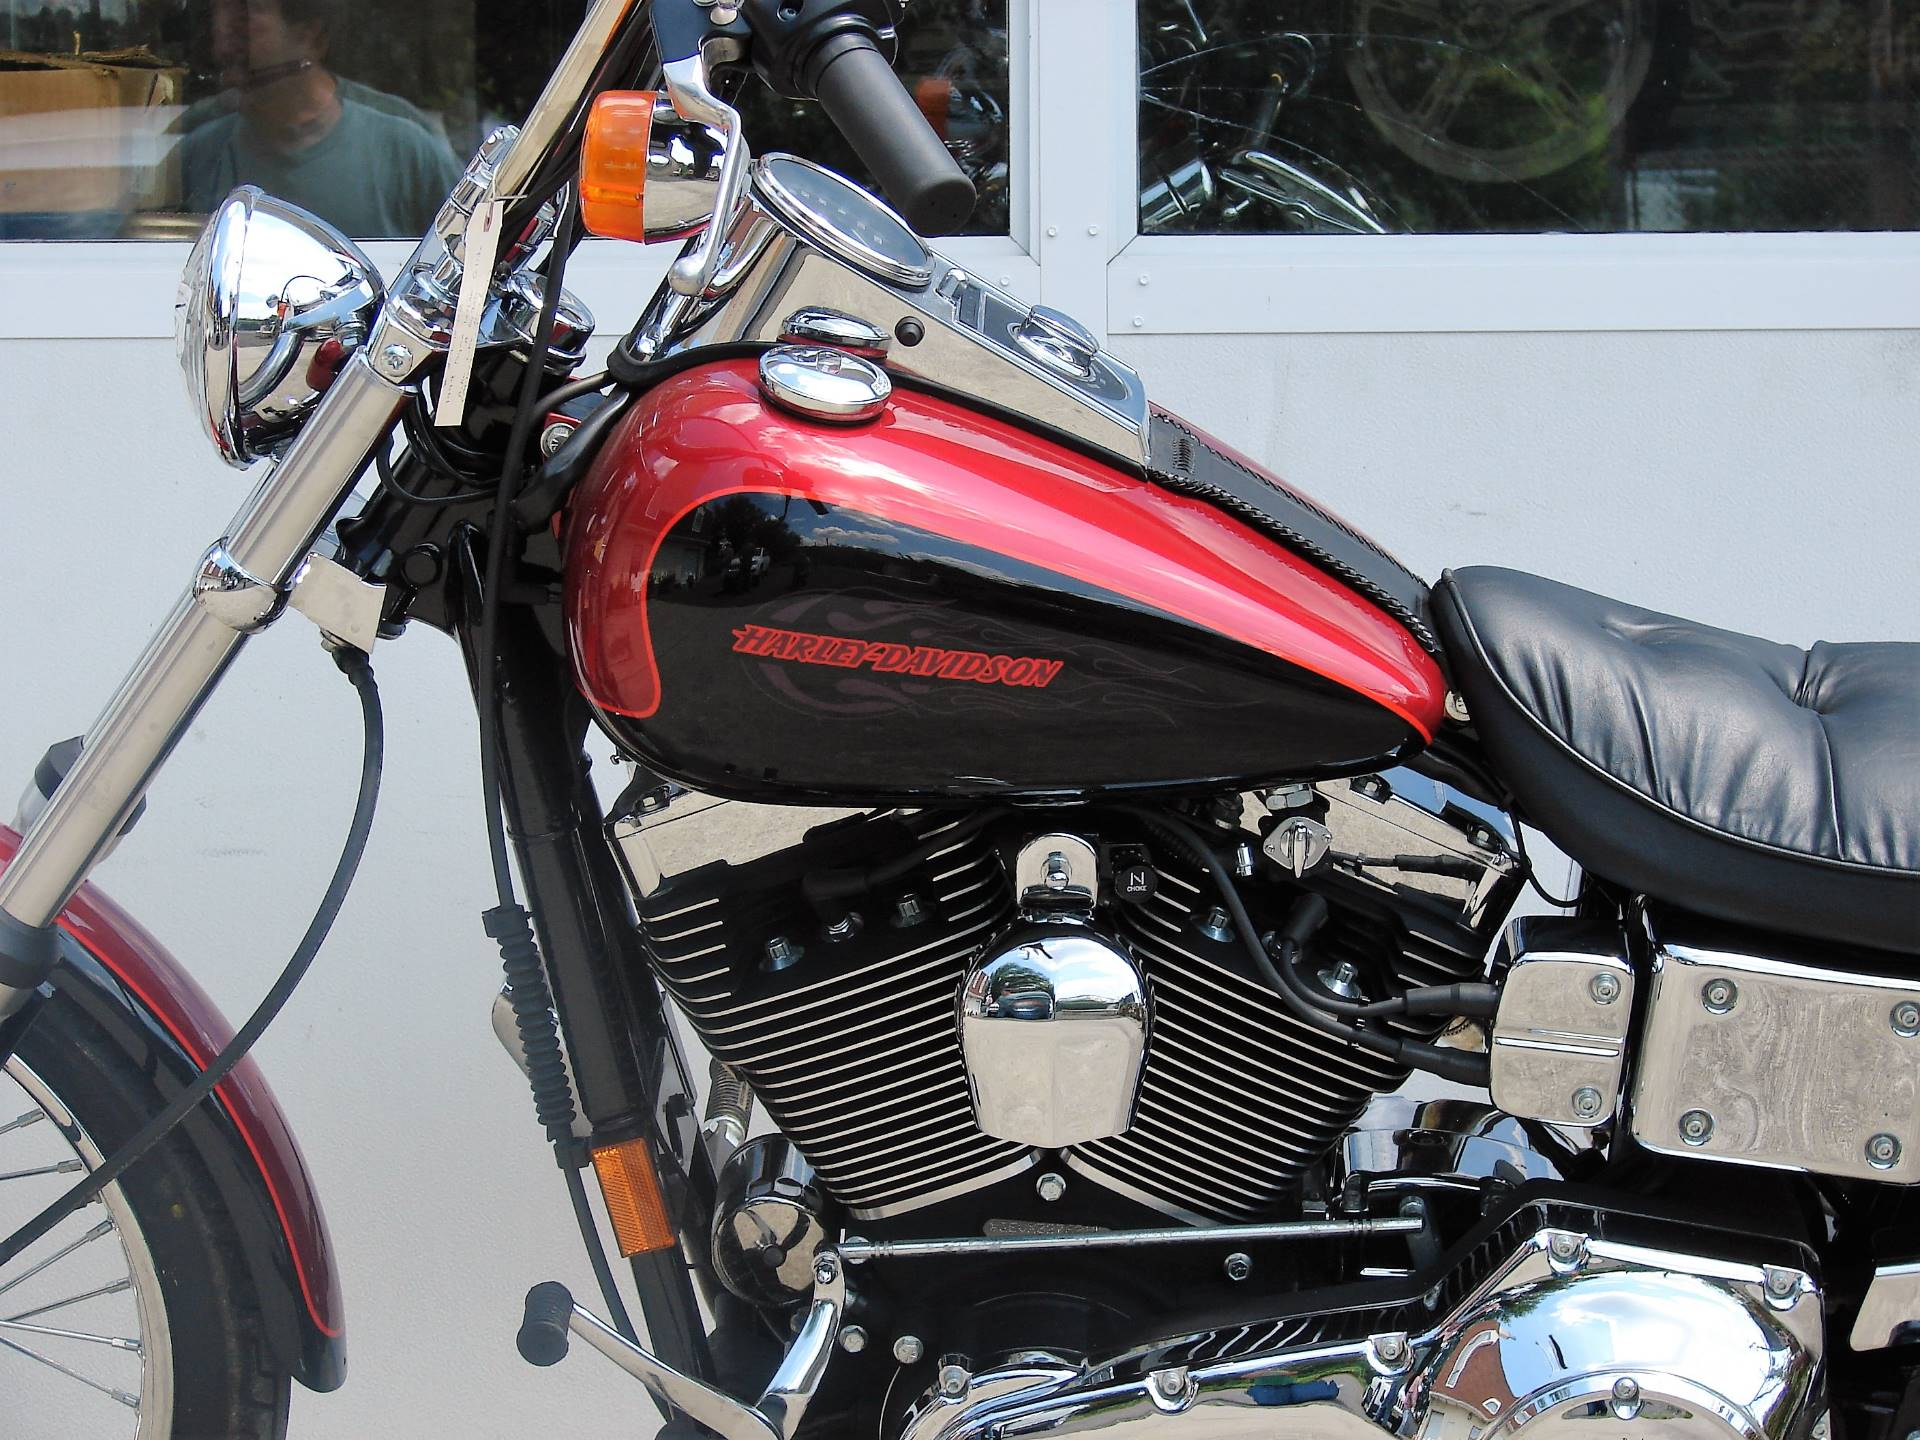 1999 Harley-Davidson FXDWG Dyna Wide Glide   (Like New!) in Williamstown, New Jersey